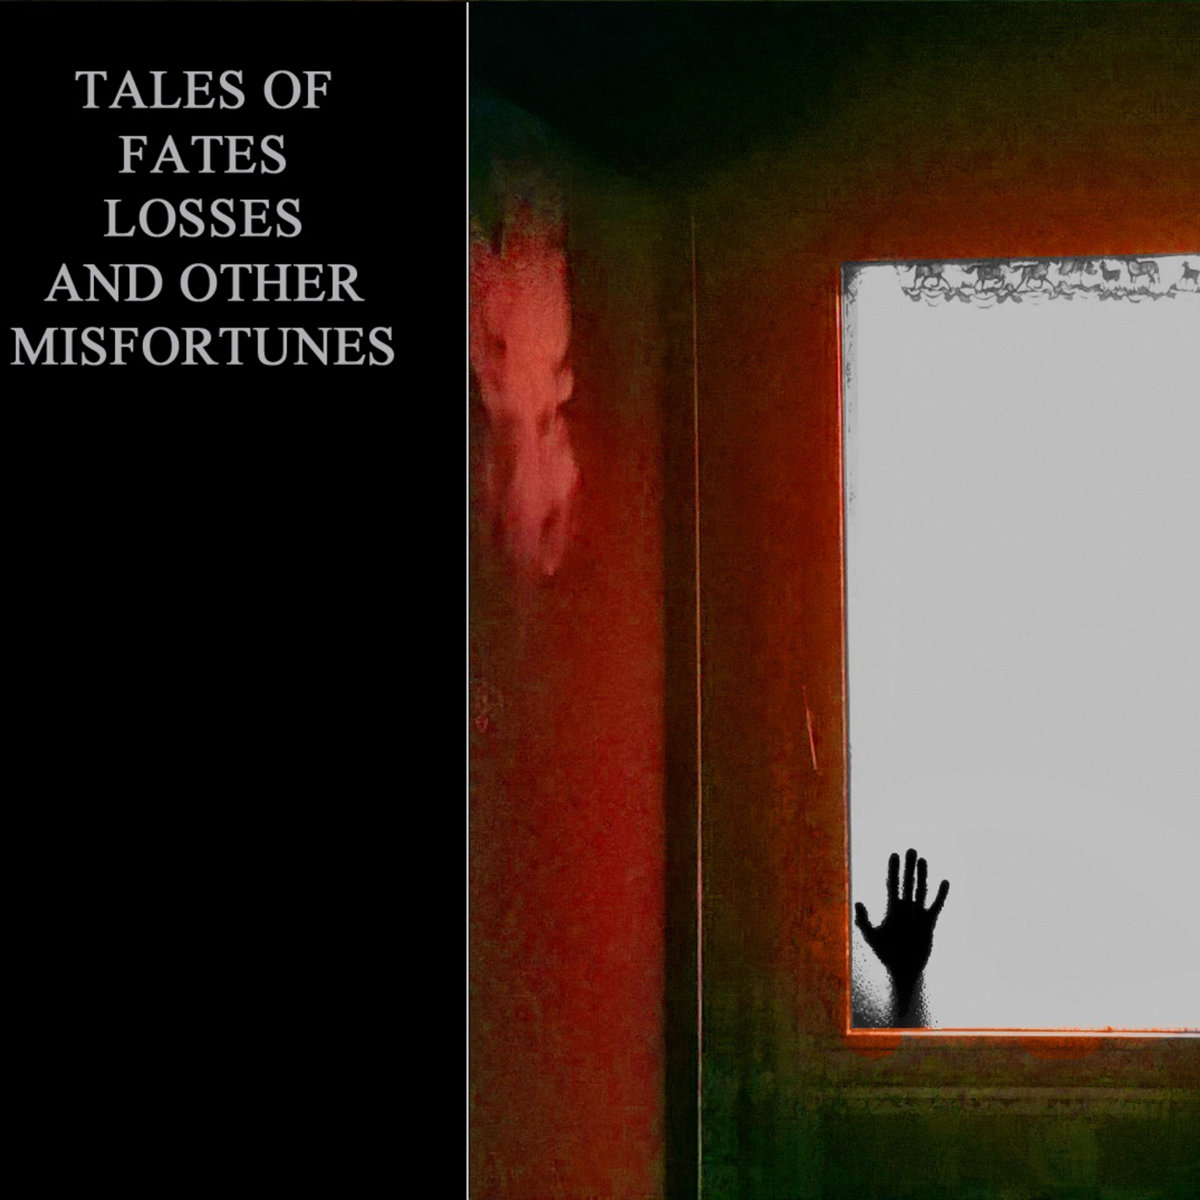 https://dhaturarecords.bandcamp.com/album/tales-of-fates-losses-and-other-misfortunes